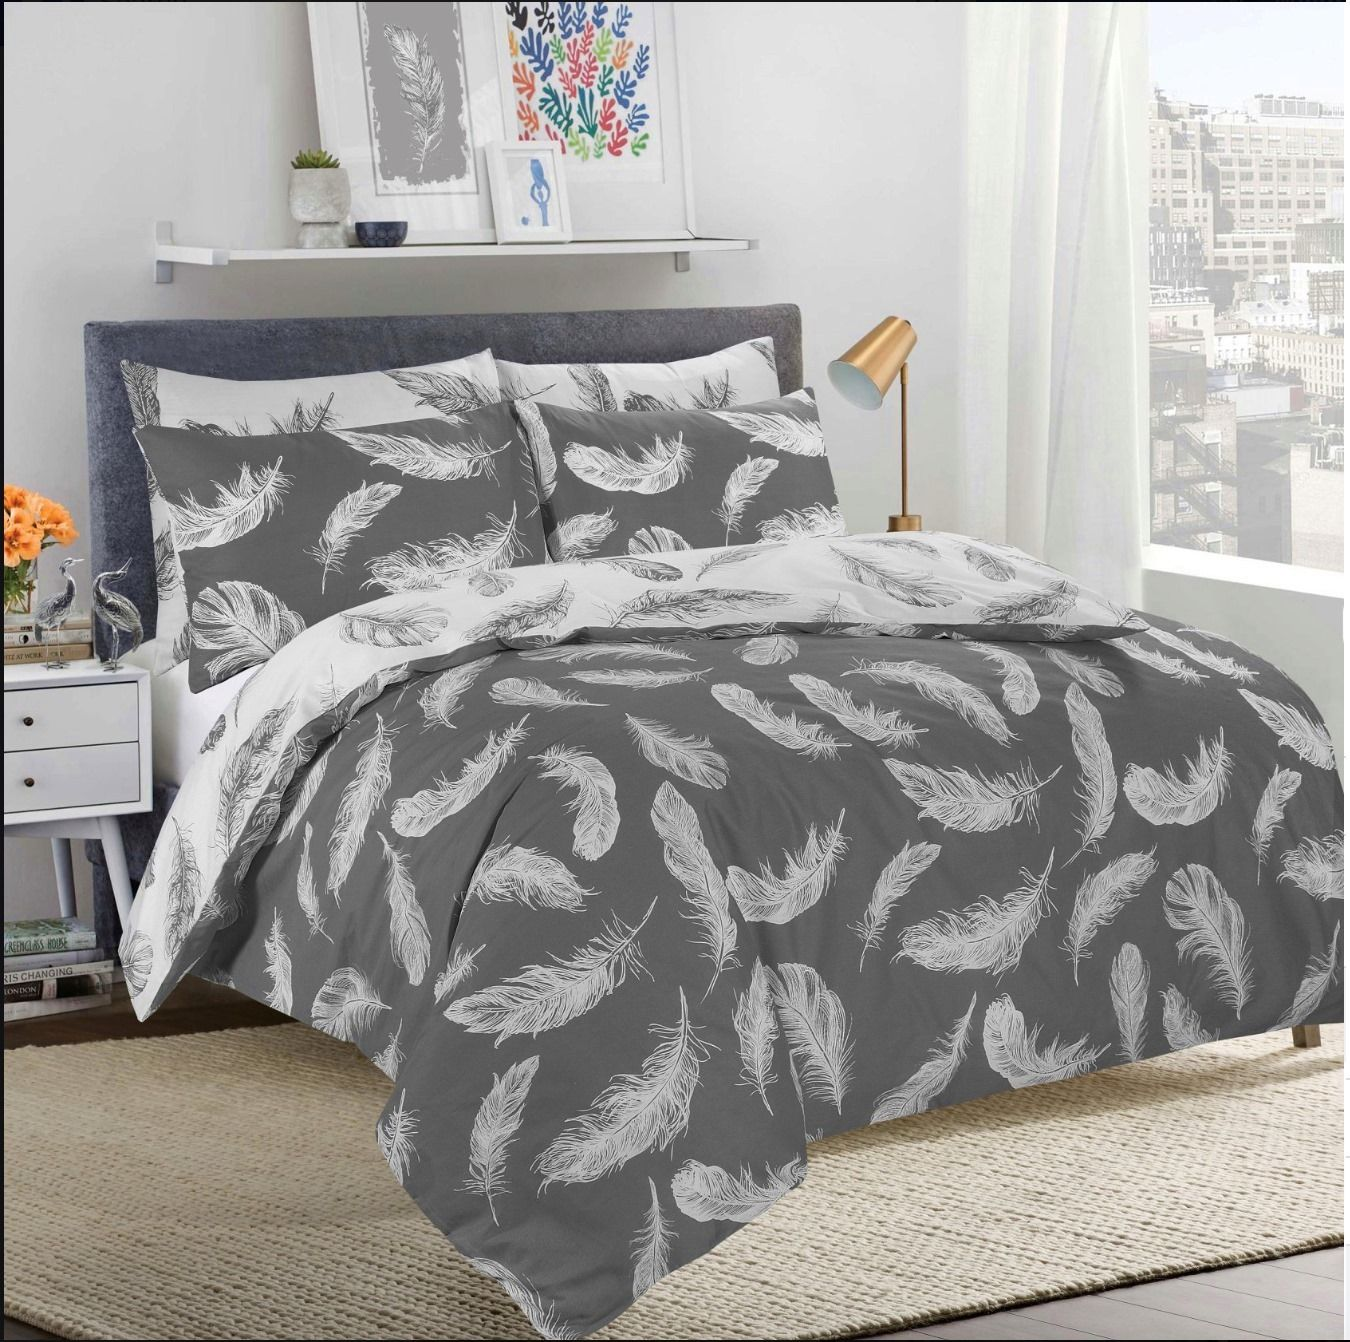 Feather Duvet Set Duvet Sets Bed Design Luxury Bedding Sets